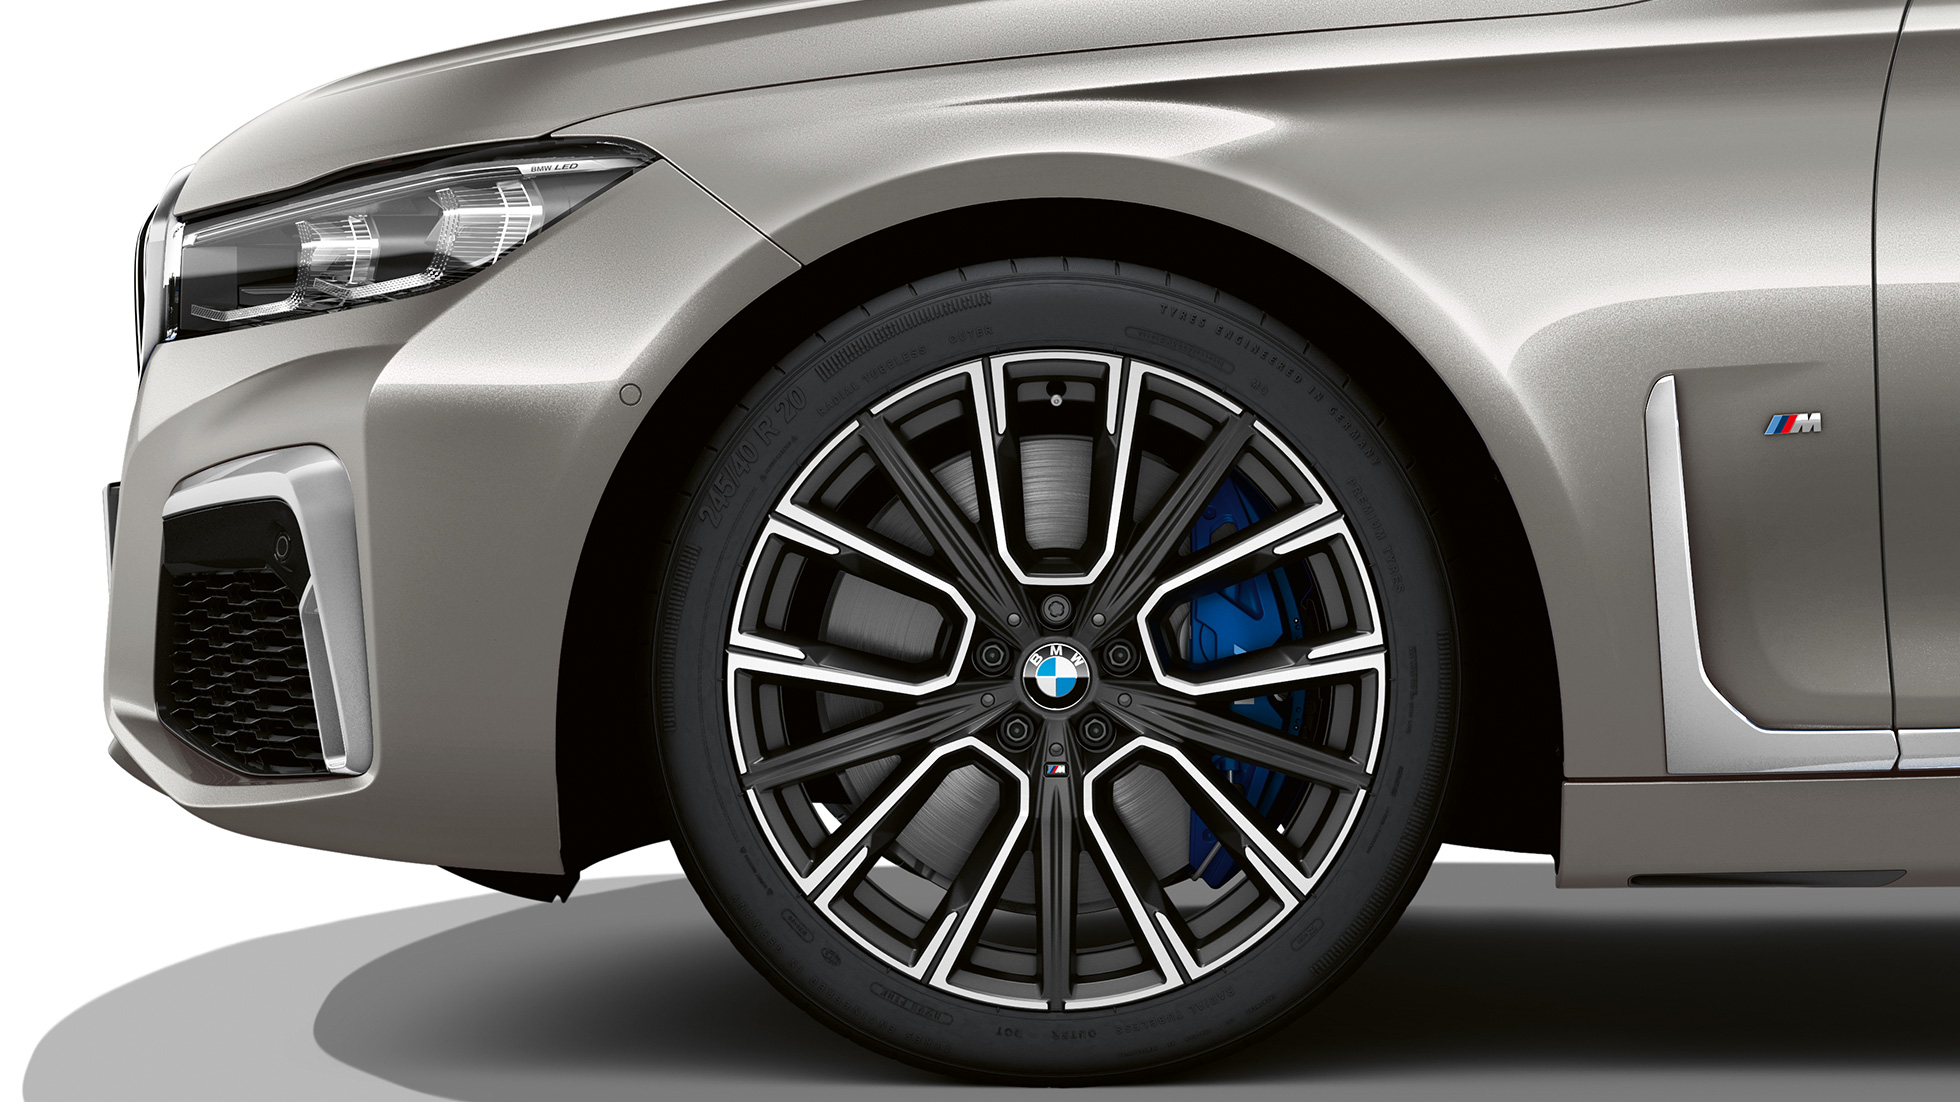 BMW 7 Series Sedan M Sport package: Close-up of the wheels